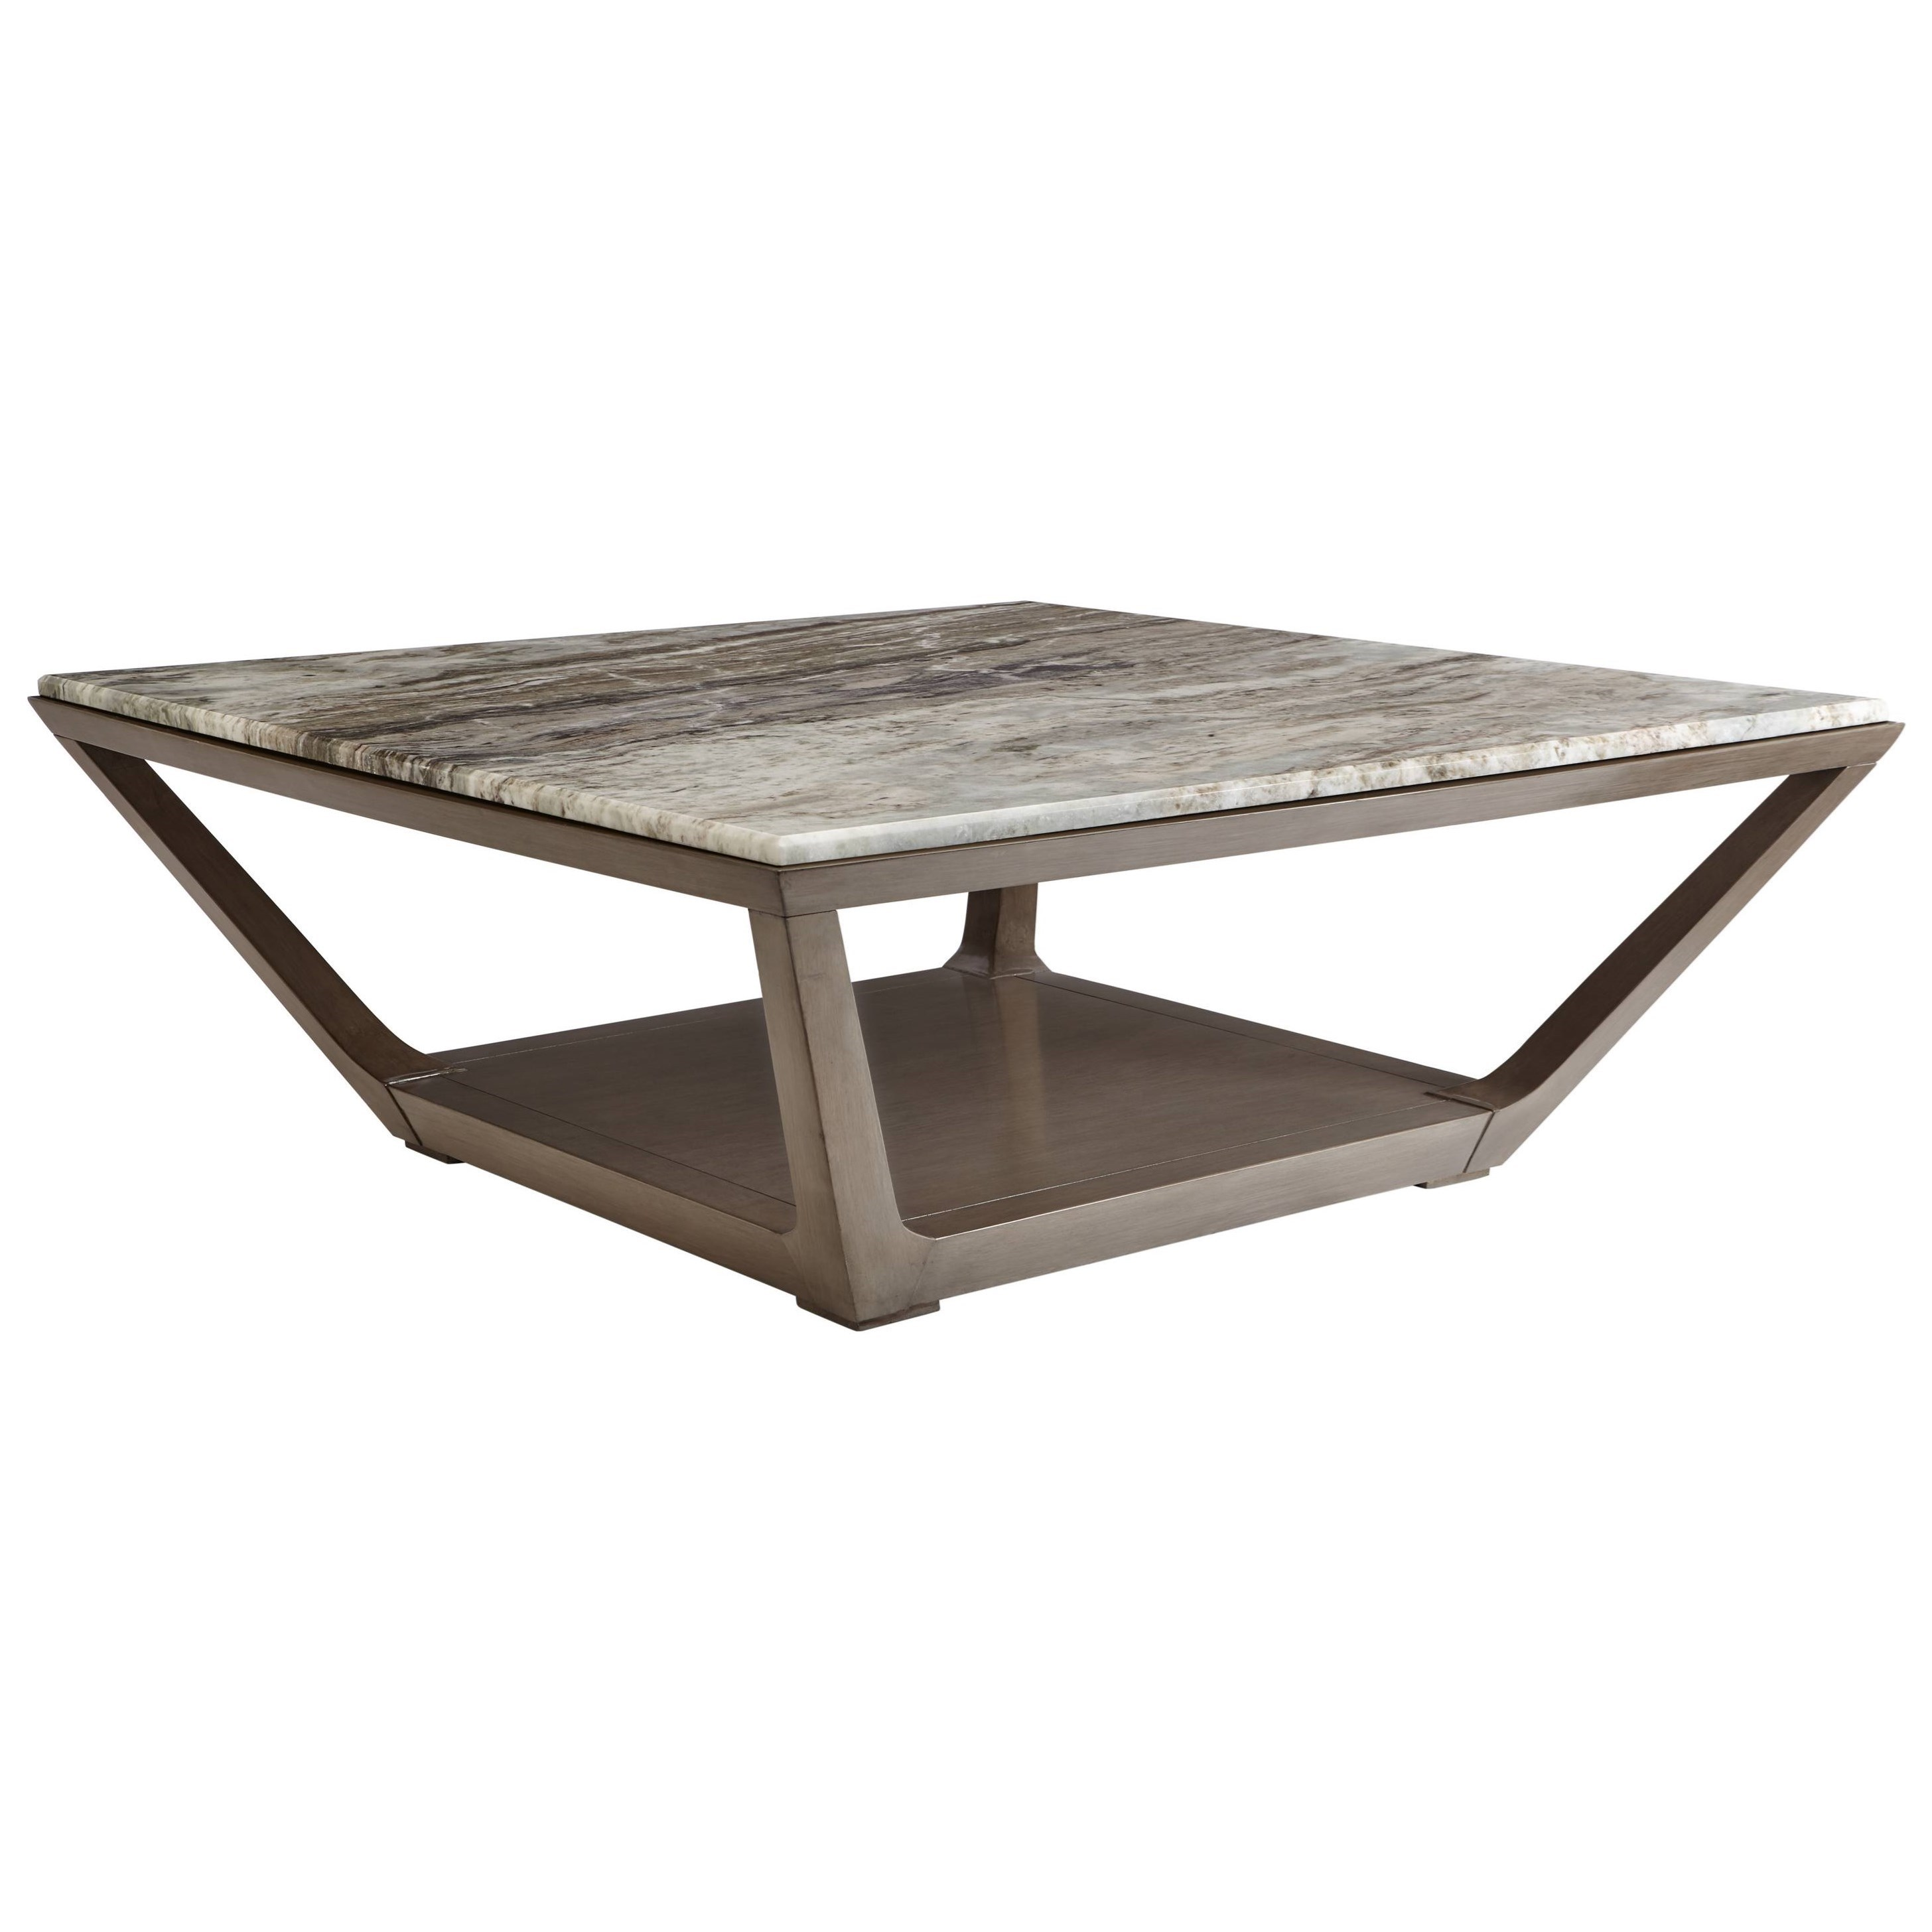 Stanley Furniture Coastal Living Oasis Poseidon Cocktail Table w/ Granite Top - Item Number: 527-65-02+75-102